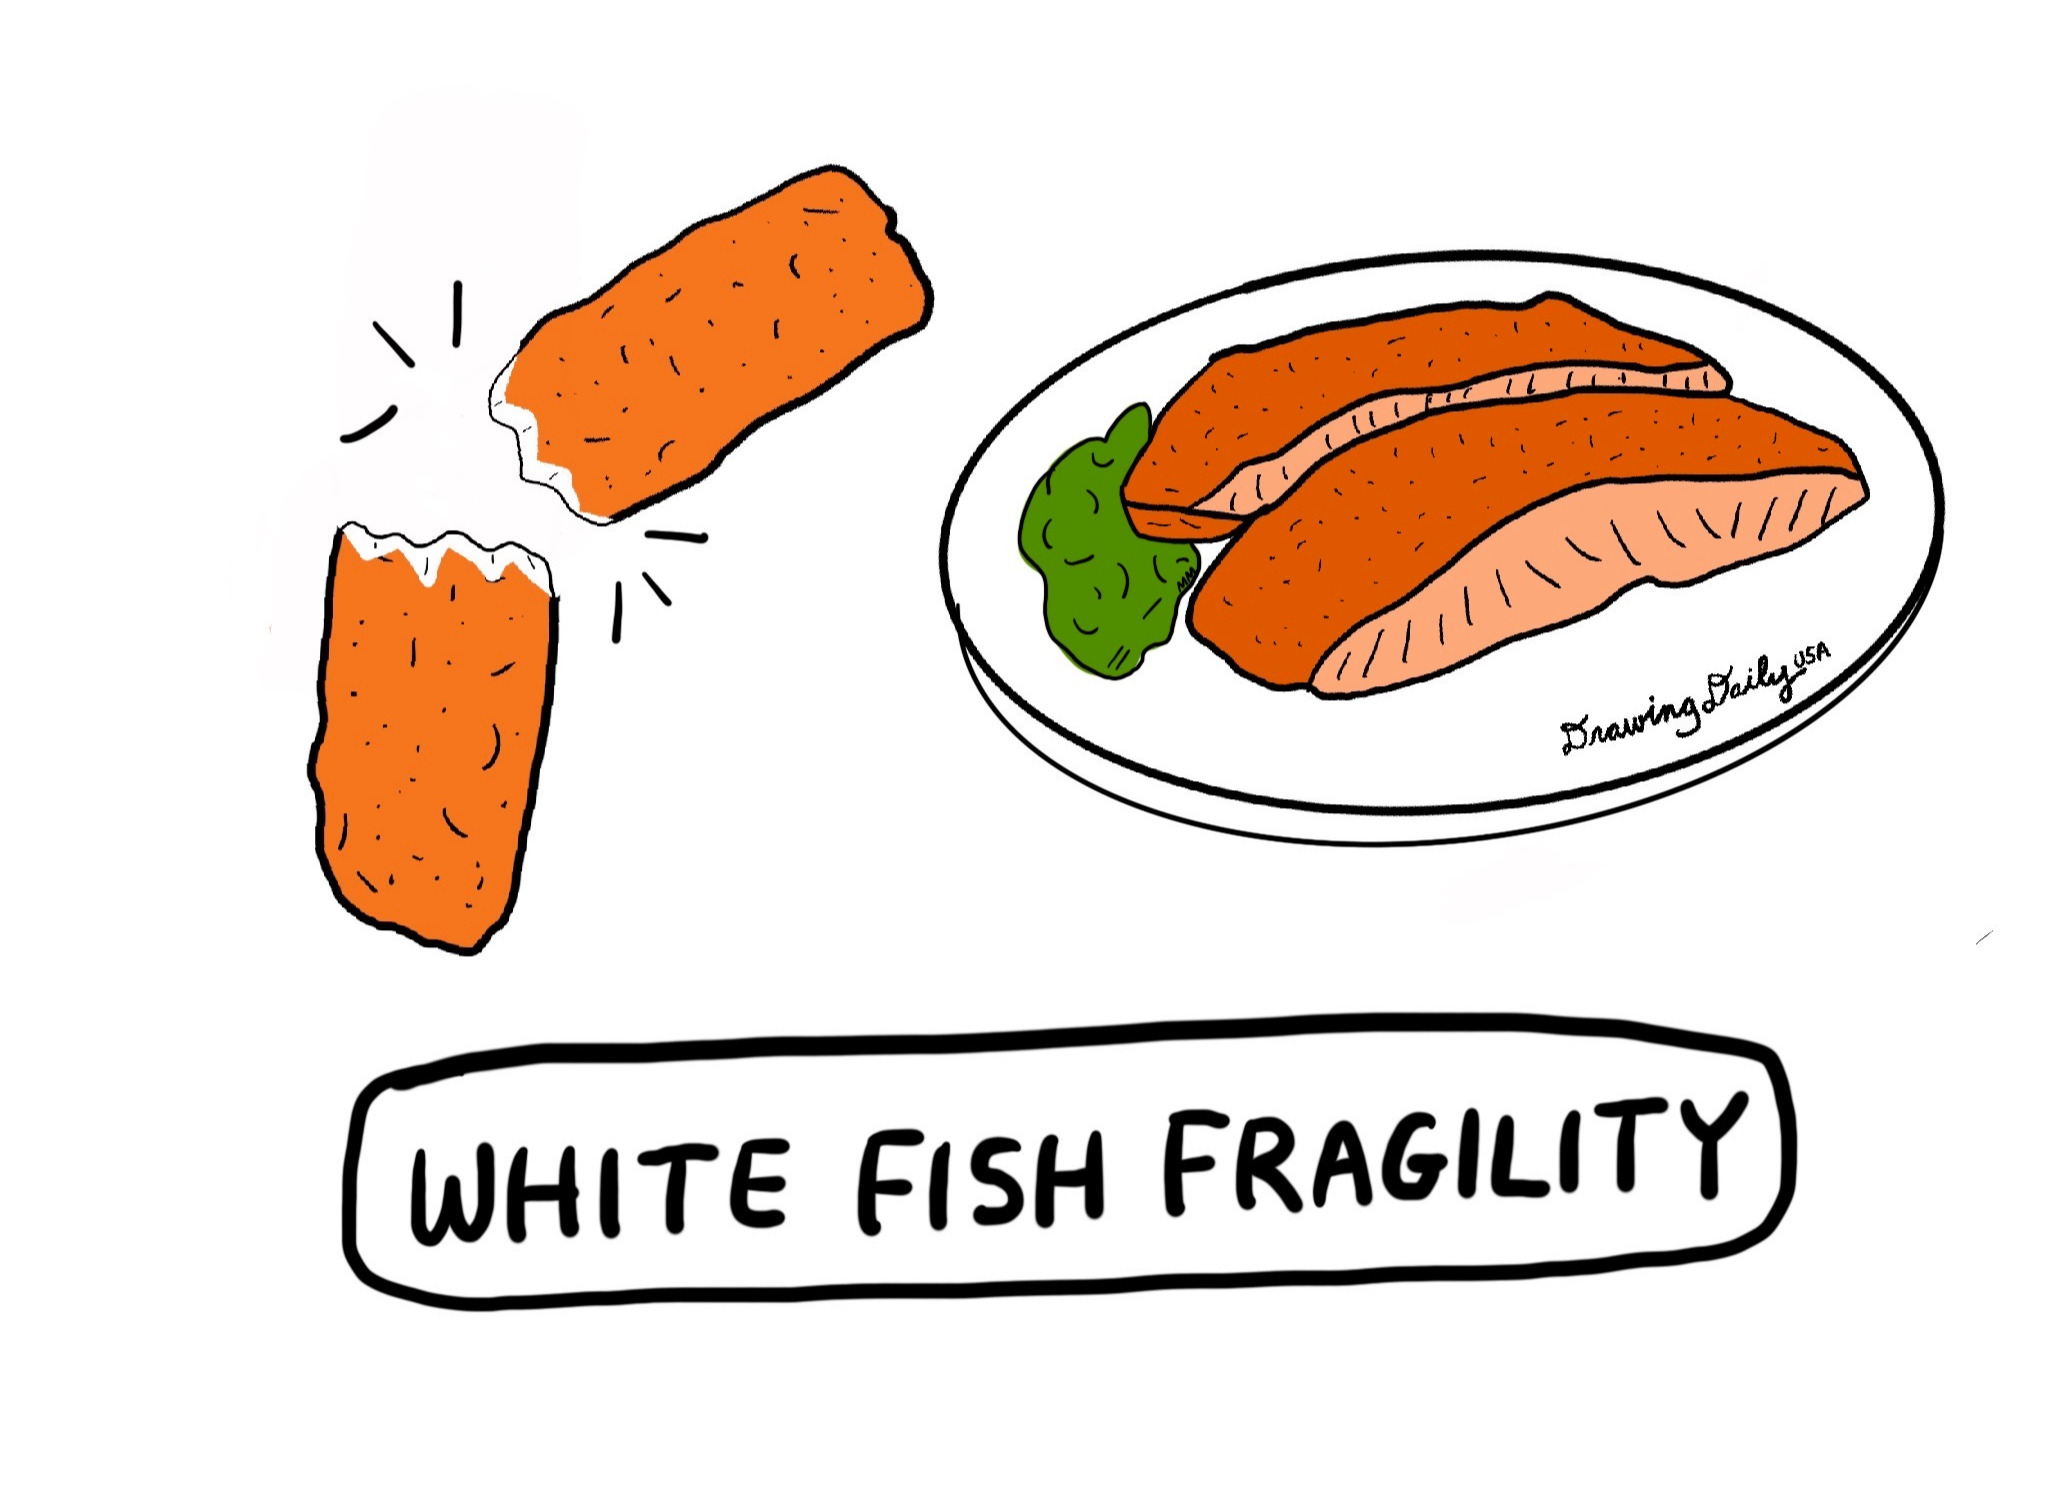 White Fish Fragility